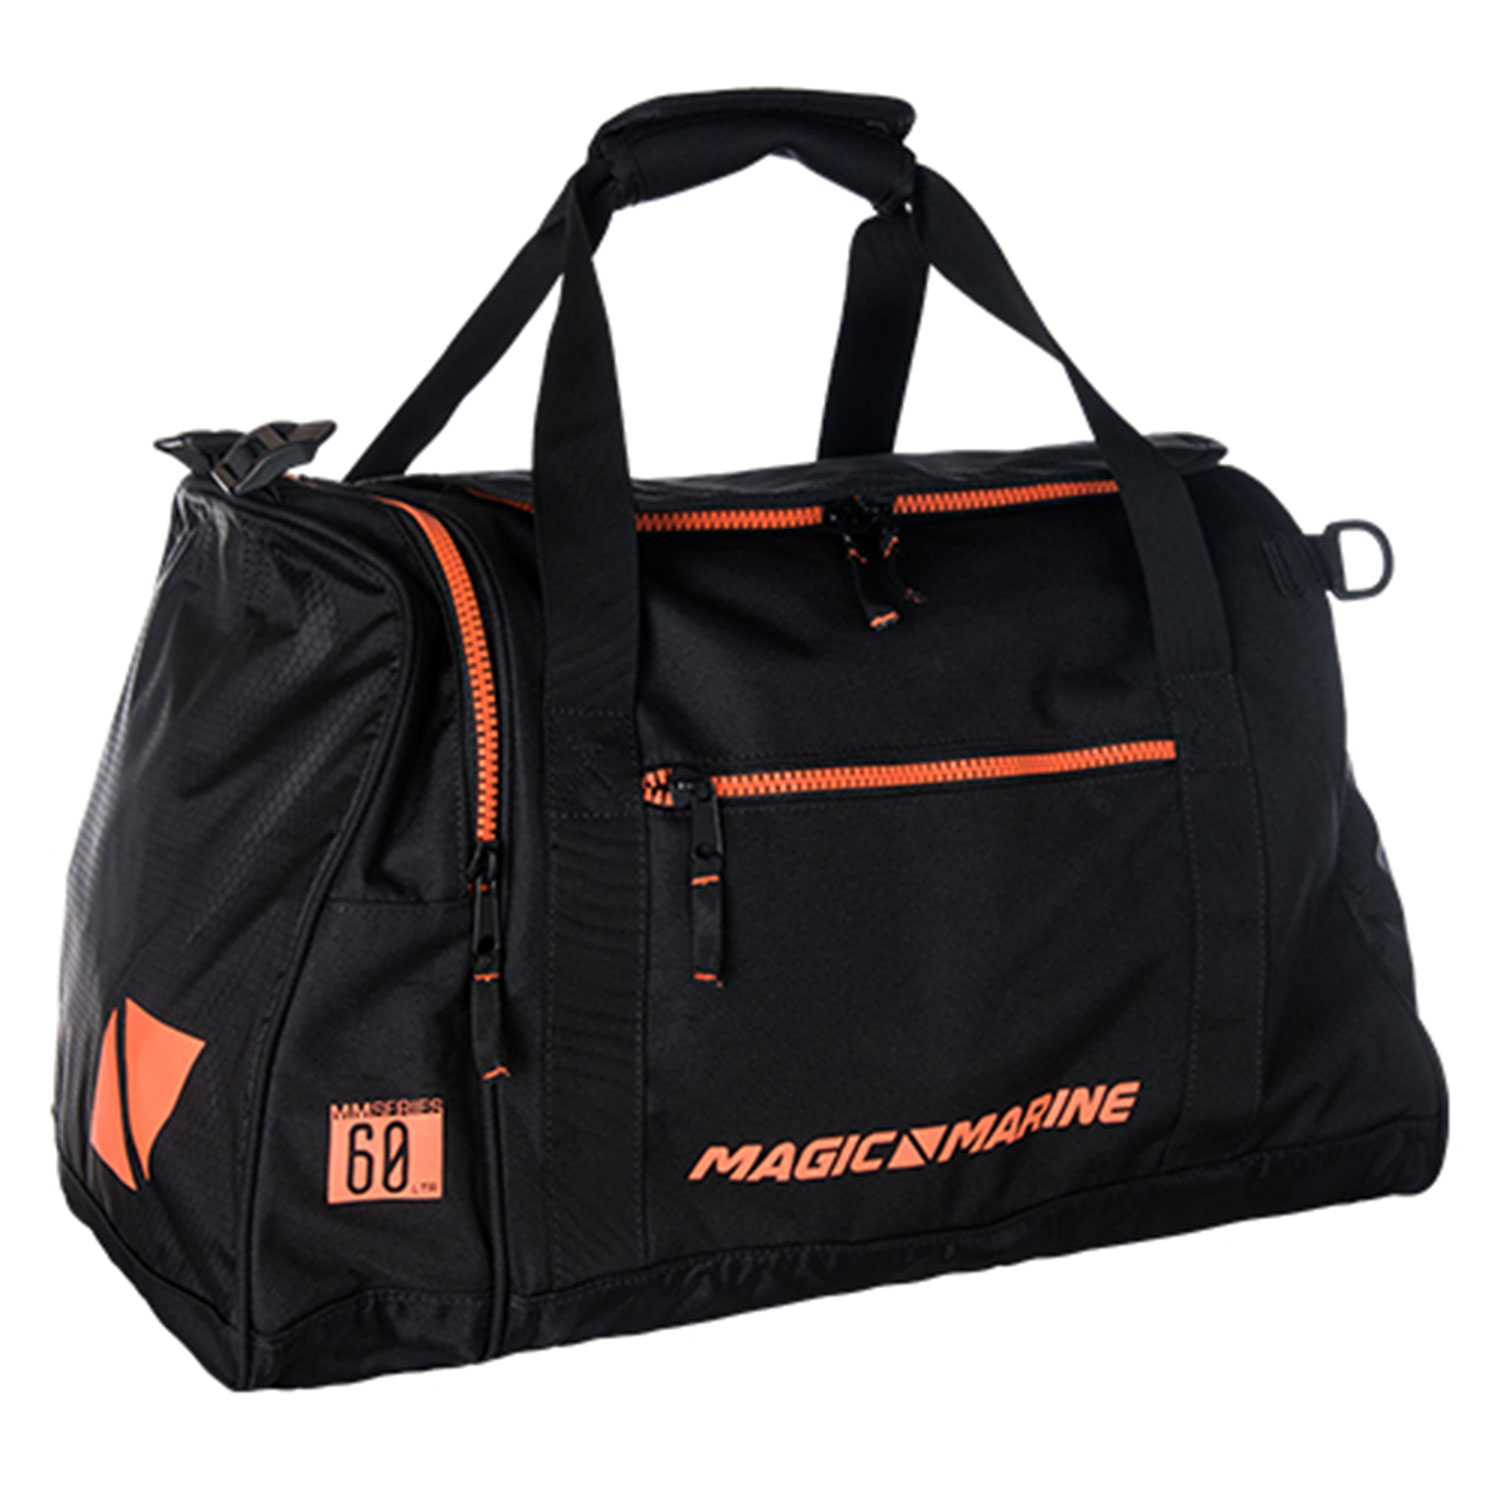 Magic Marine 60L Sailing Bag 2019 - Black